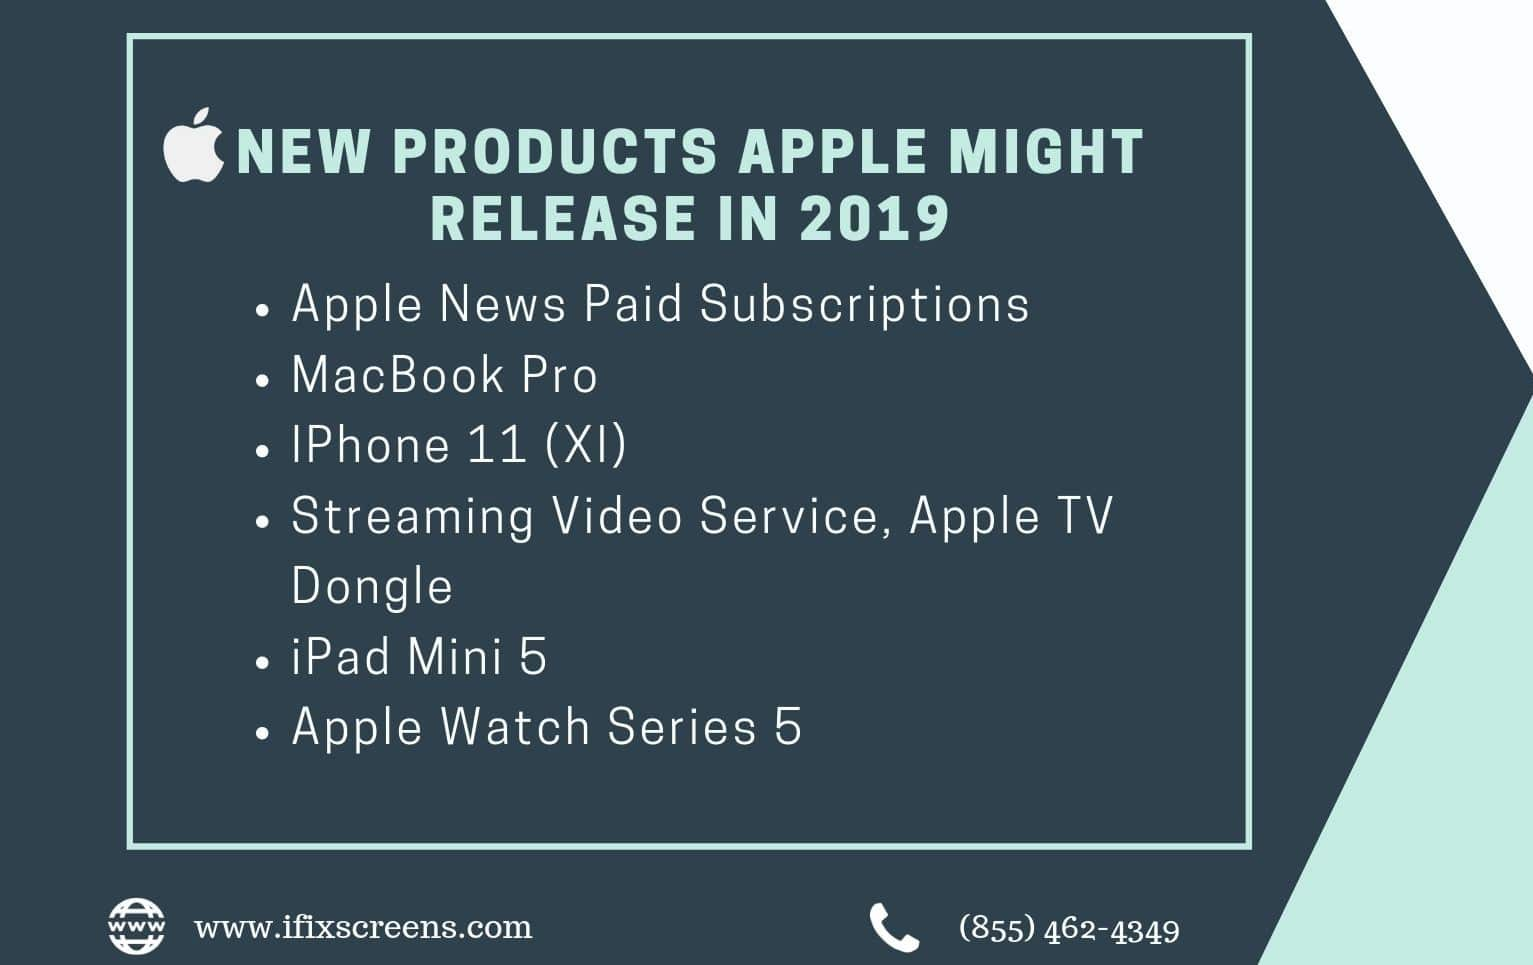 c8896d845f80f83 As we know that every year, Apple makes changes to its product collection,  and 2019 is shaping up a considerable amount of major upgrades.